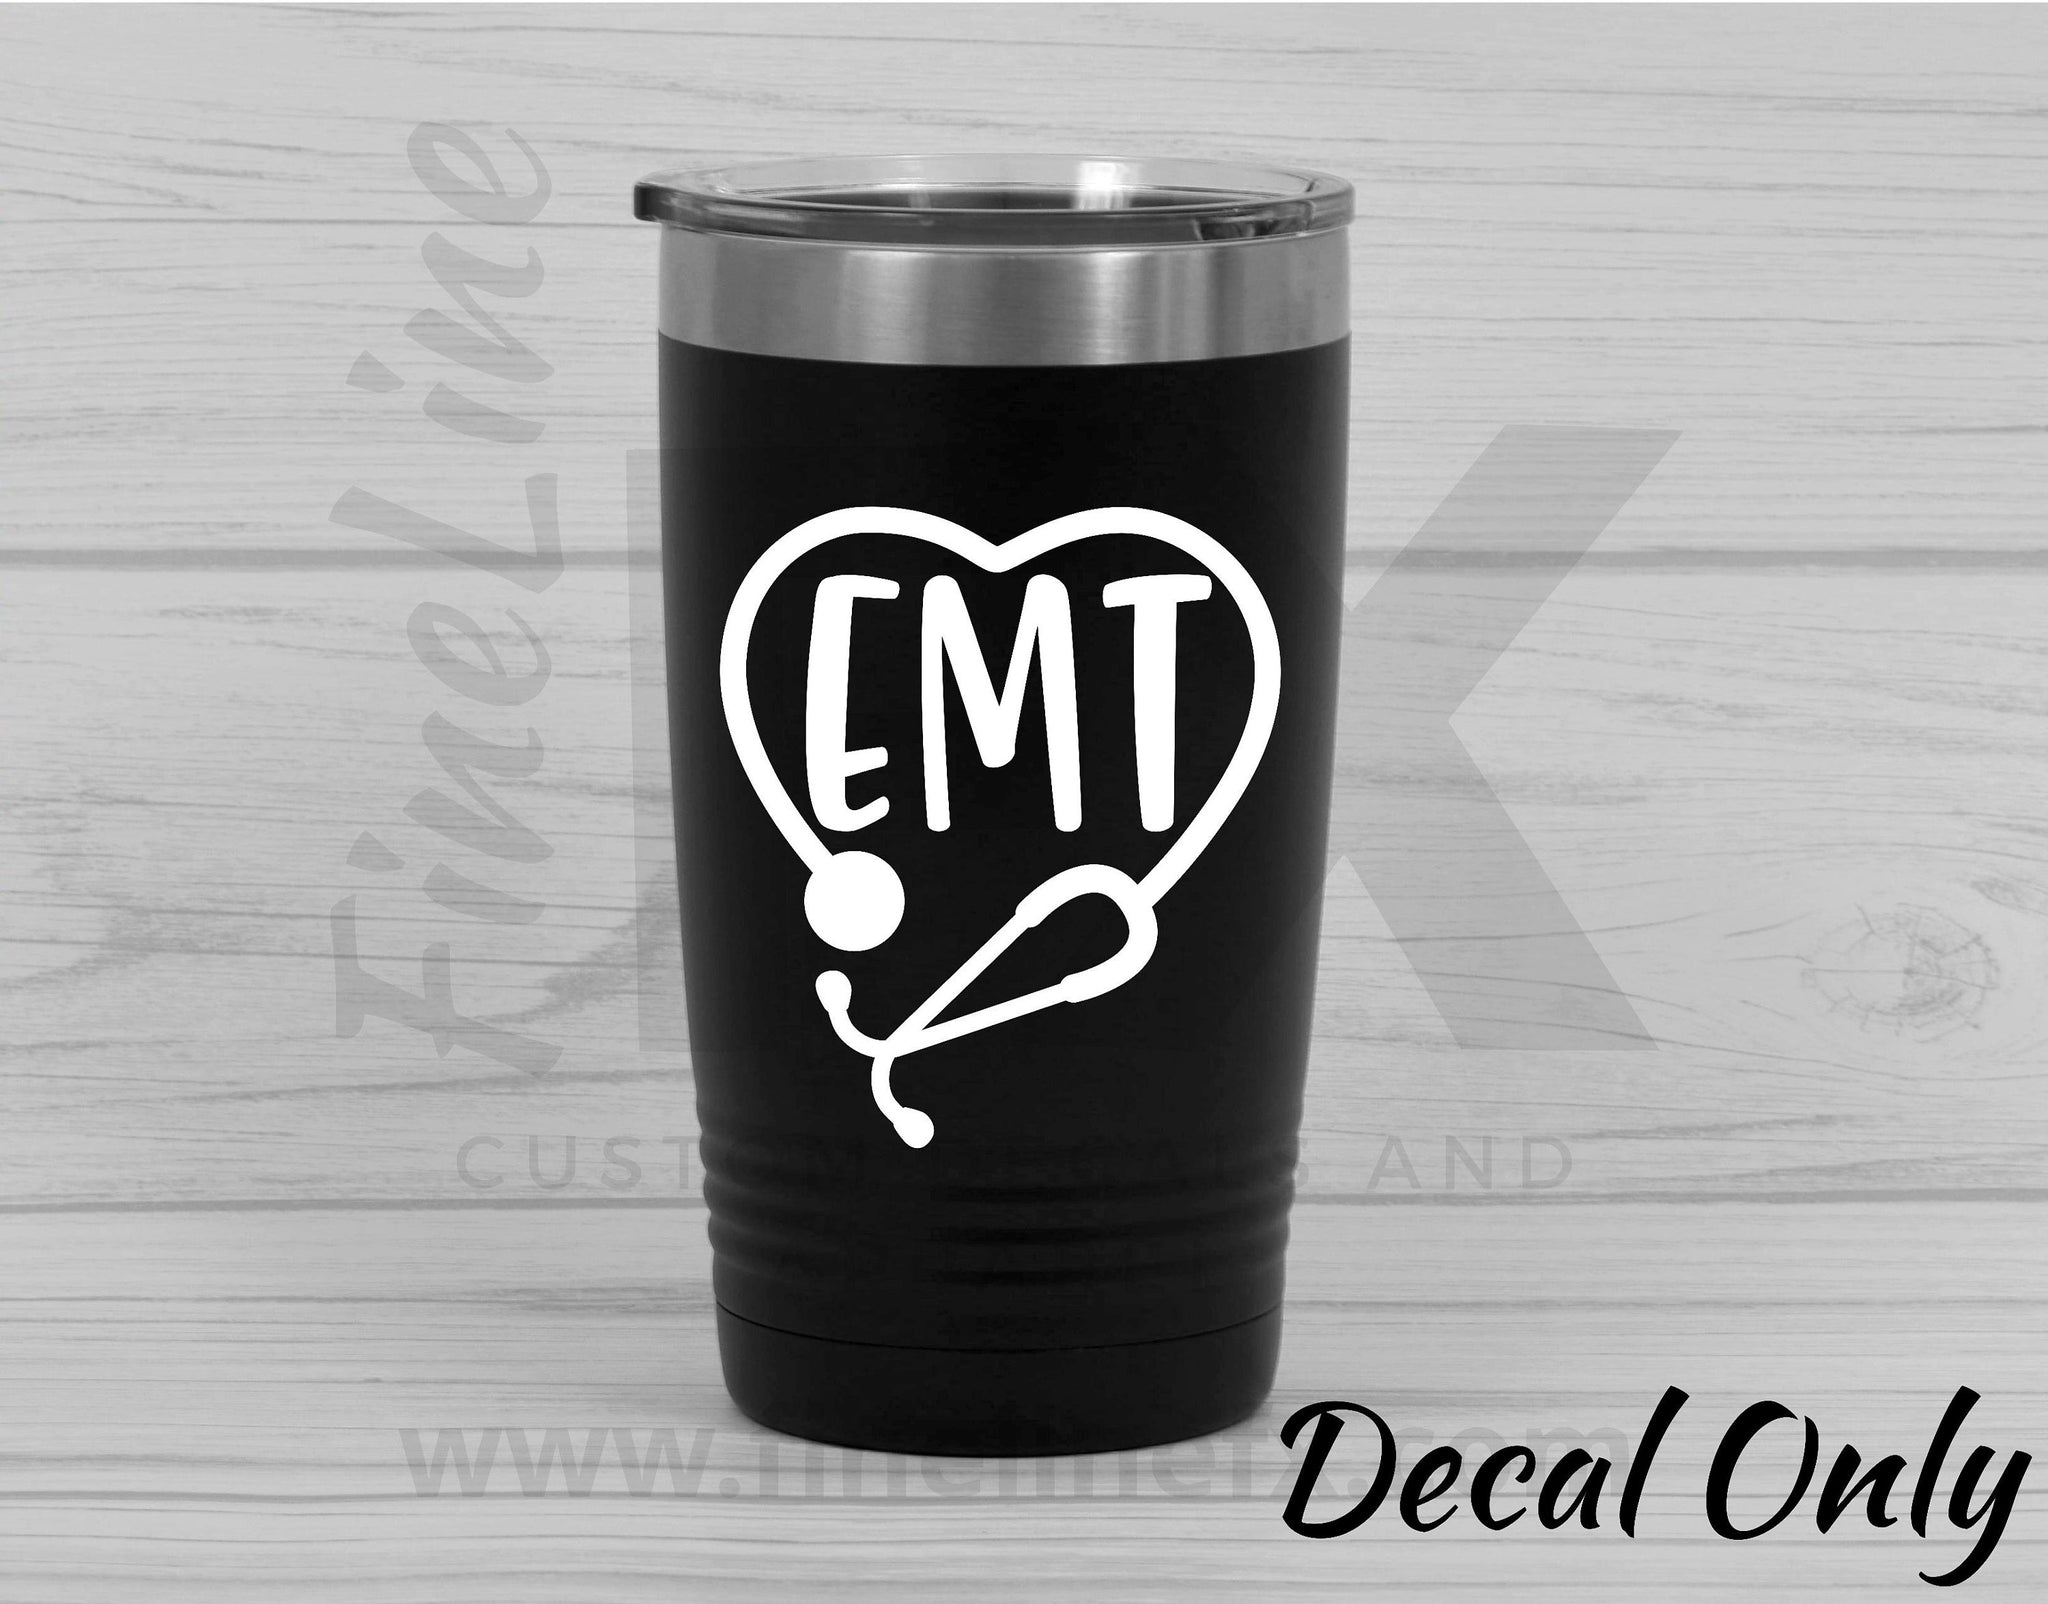 EMT Stethoscope Emergency Medical Tech Vinyl Decal Sticker